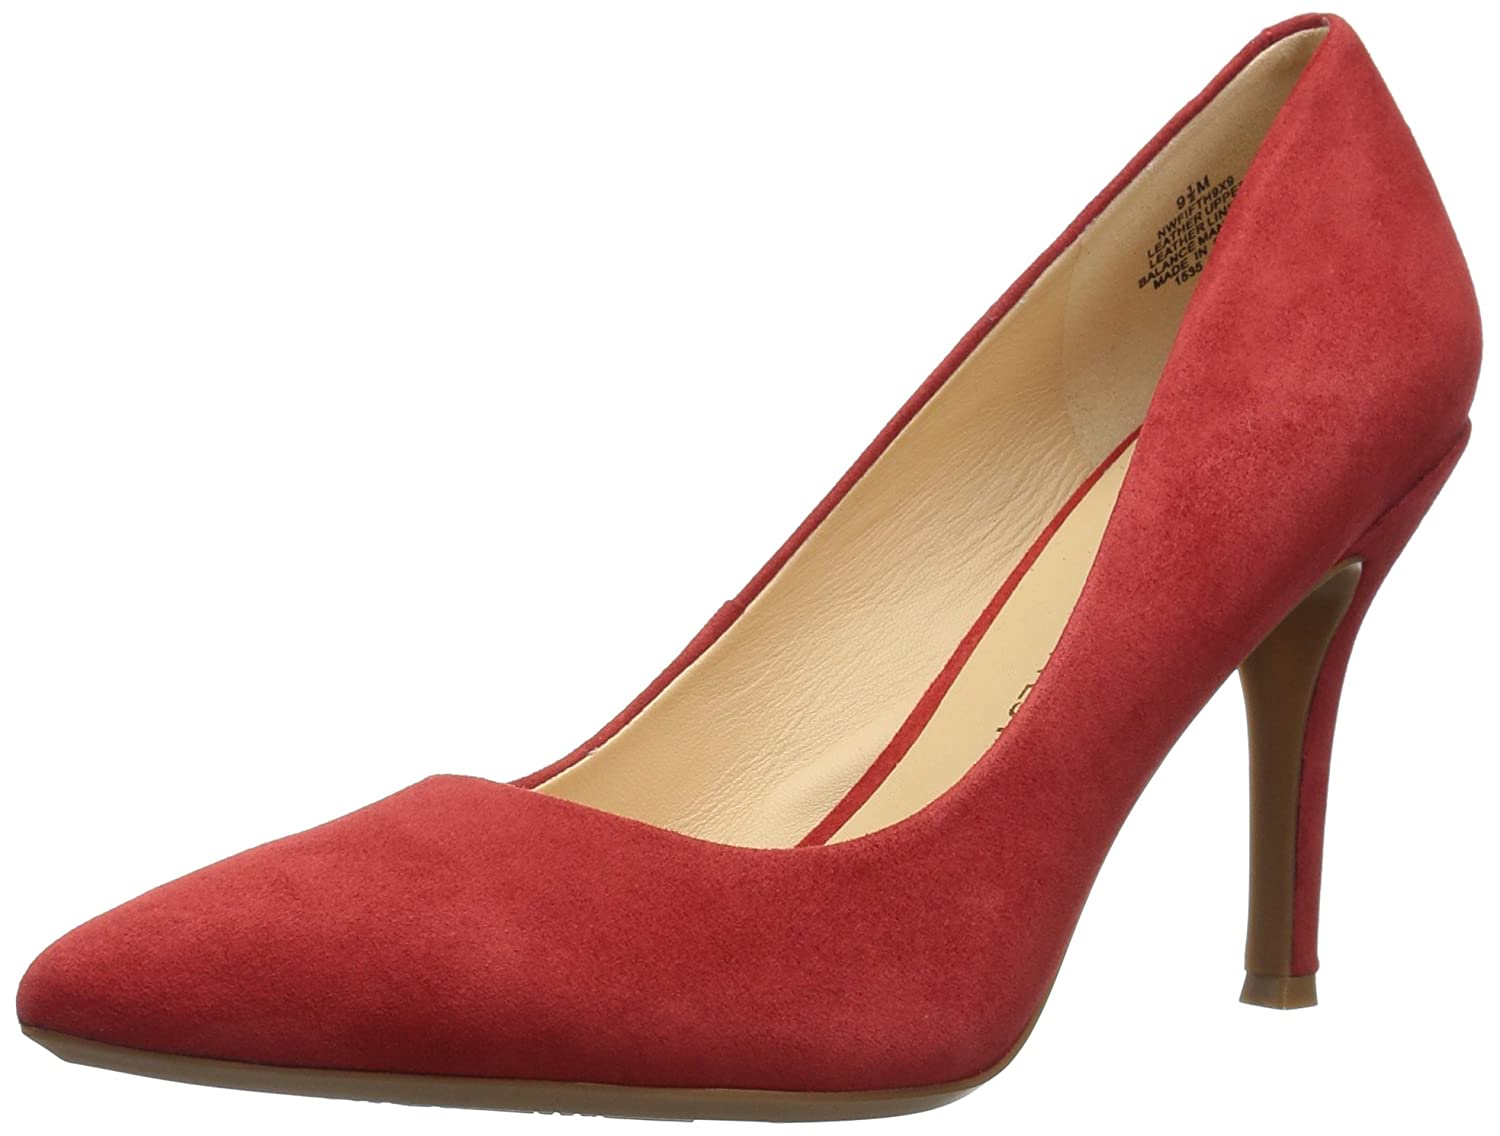 Nine West Women's FIFTH9X Fifth Pointy Toe Pumps B01MXTOAOK 9.5 B(M) US|Red Suede